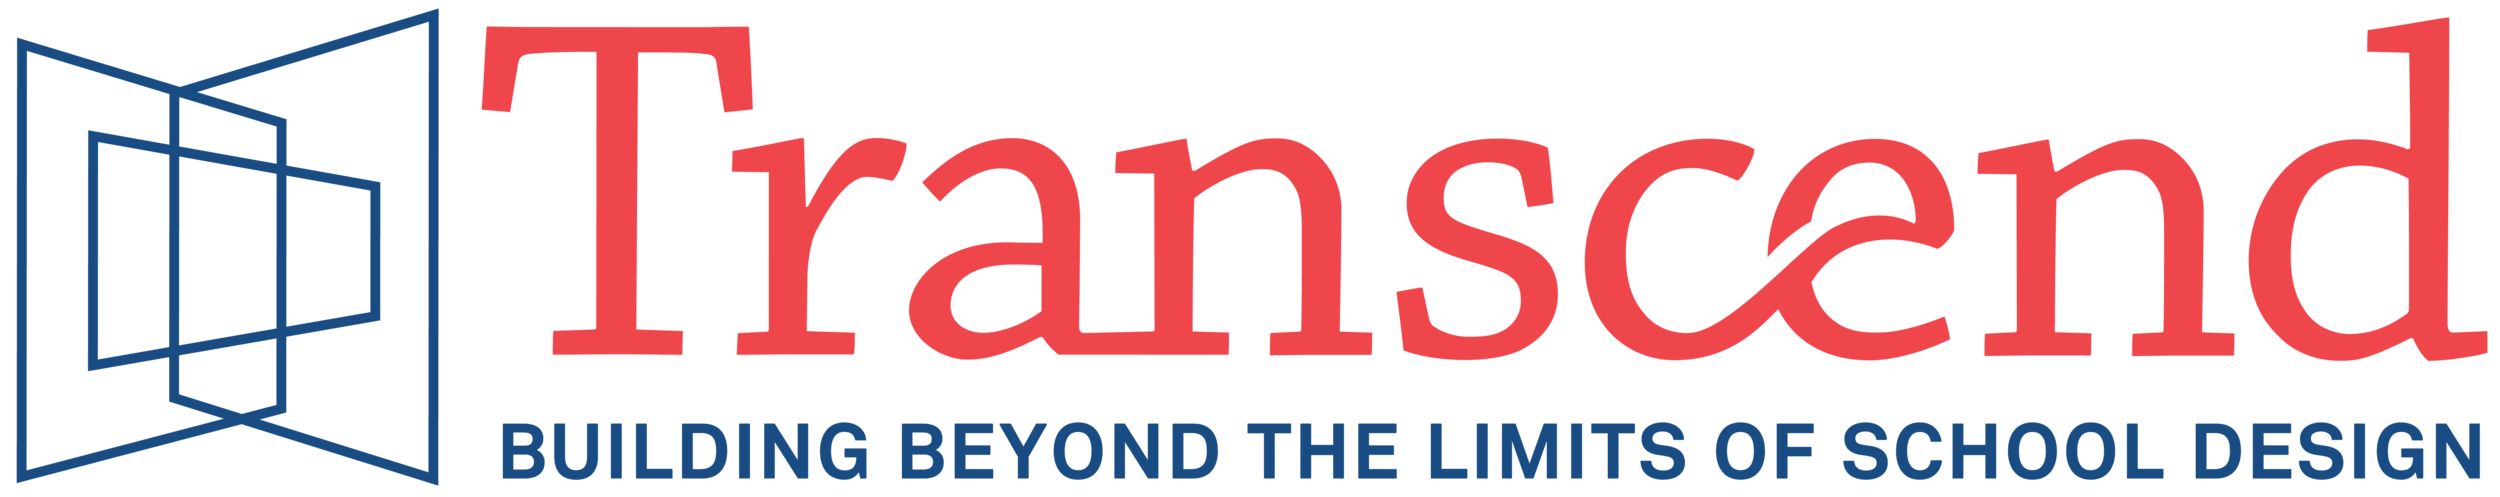 Transcend_Logo with tagline.png